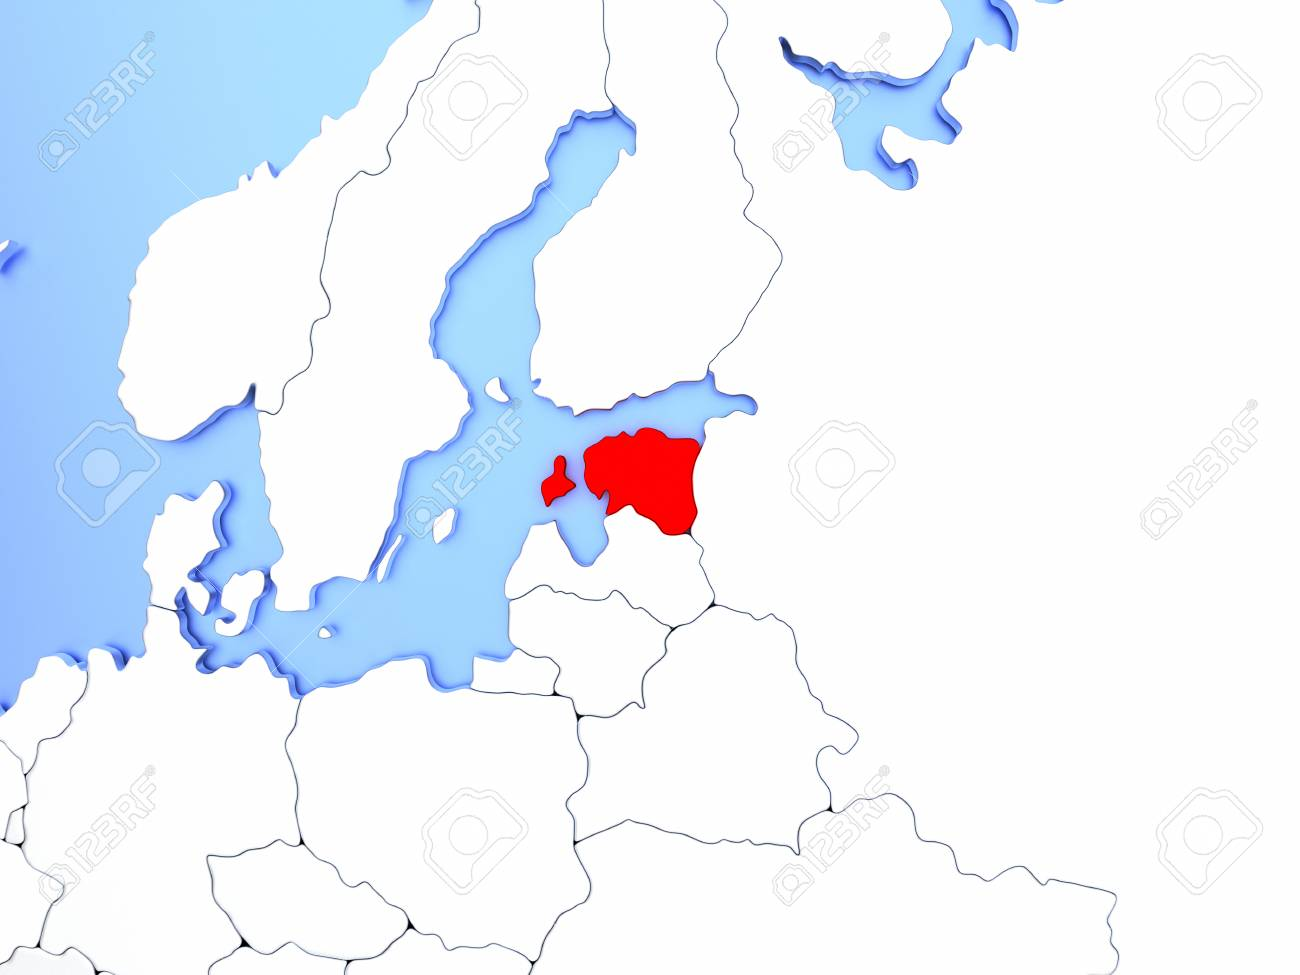 illustration map of estonia highlighted in red on simple shiny metallic map with clear country borders 3d illustration